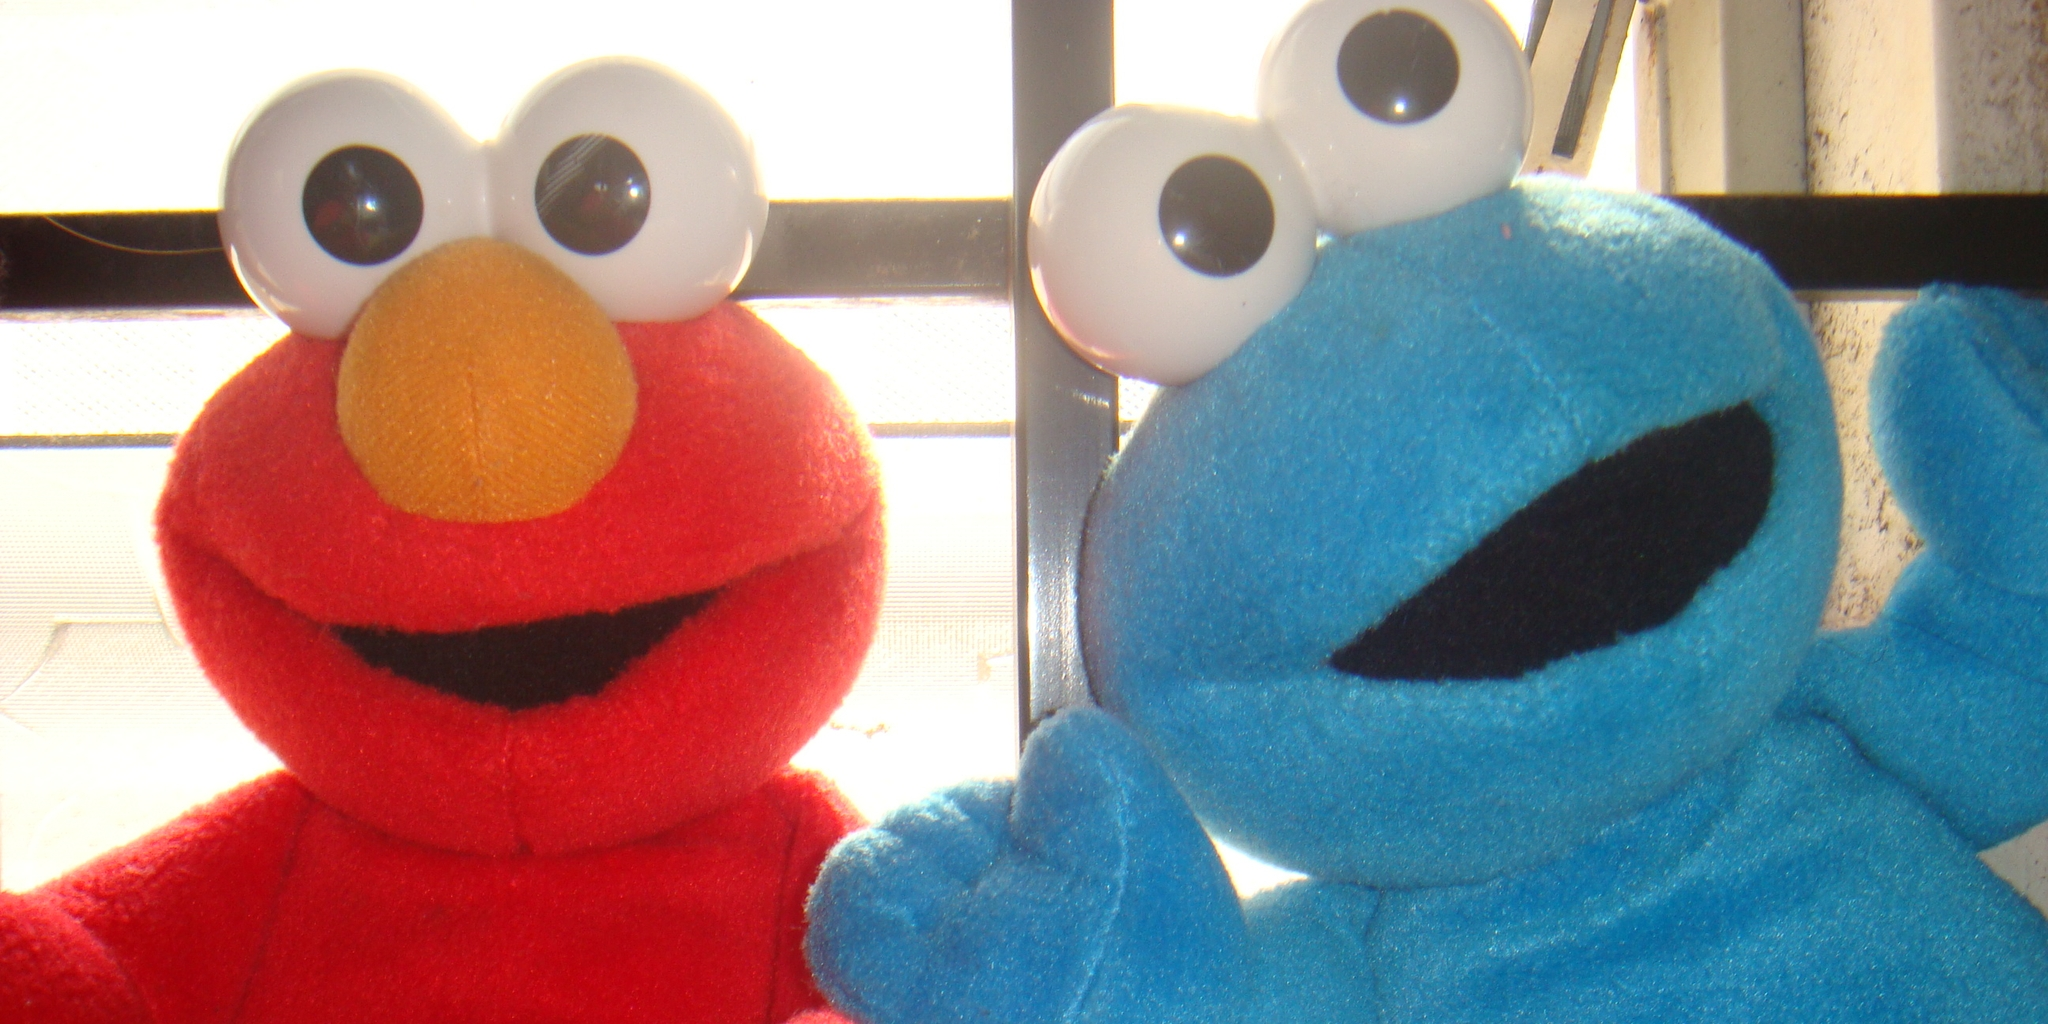 elmo and cookie monster toys have nsfw fun when left in a